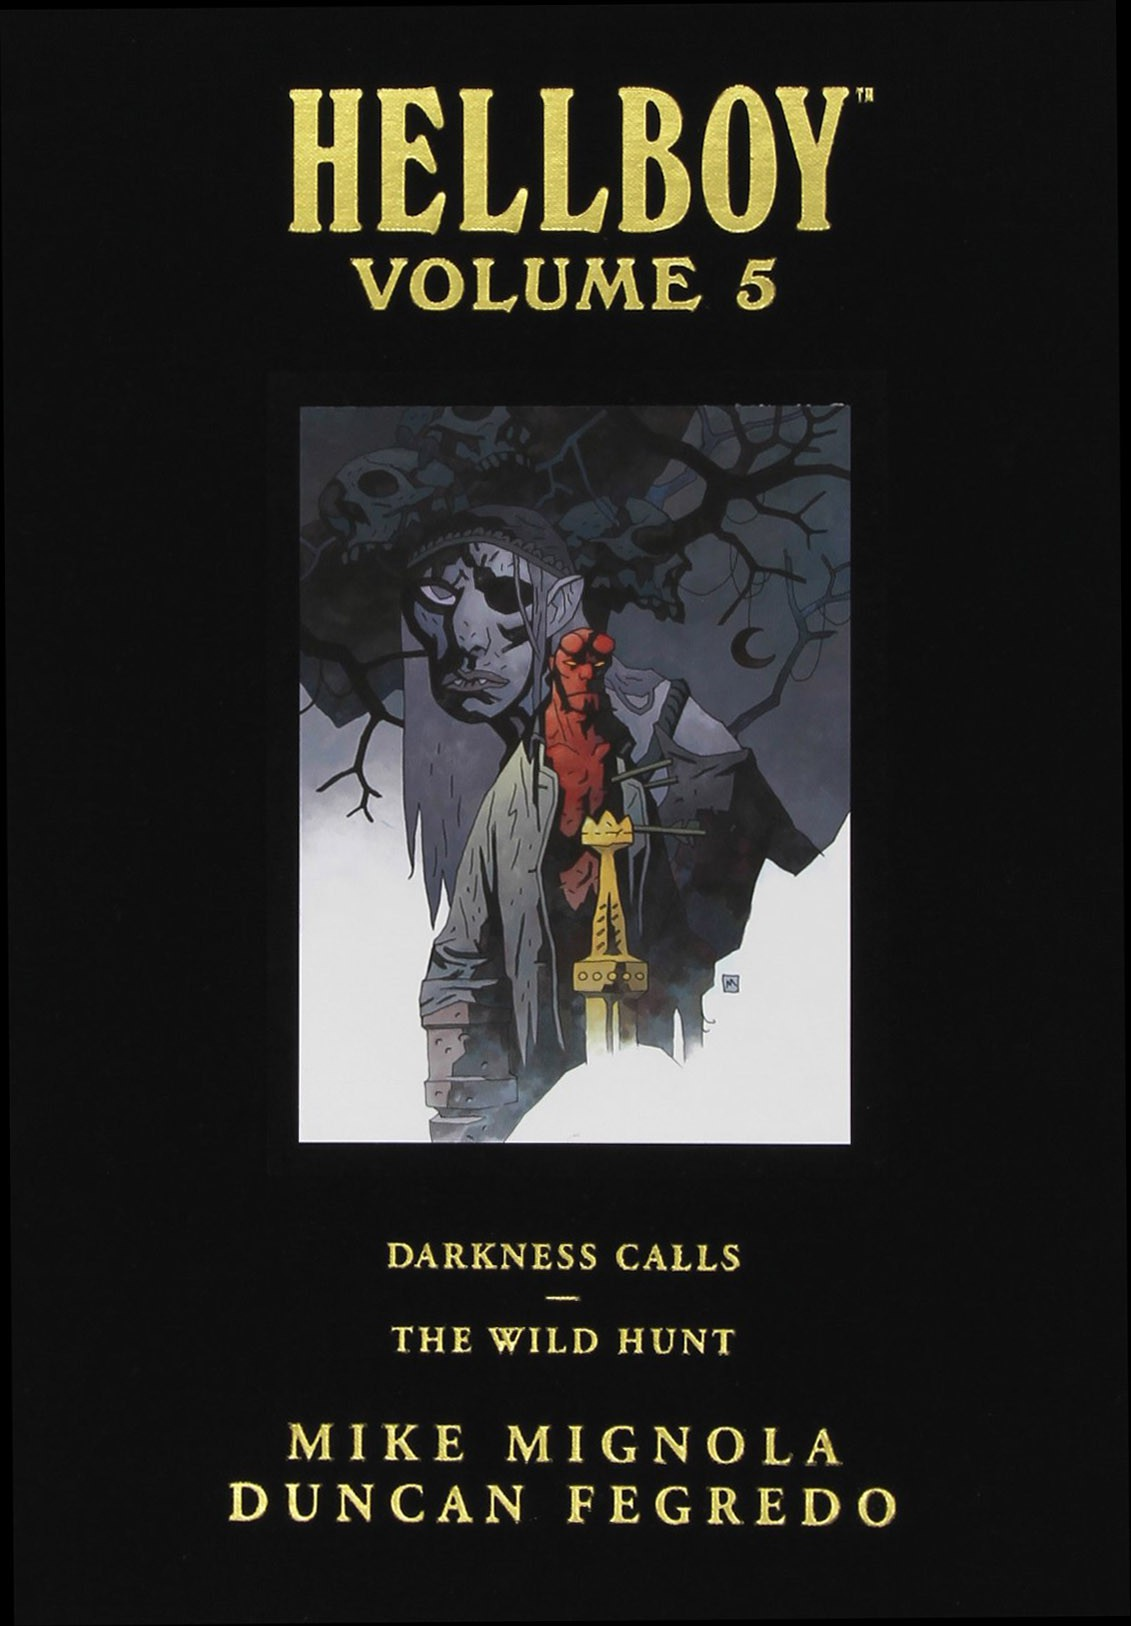 Hellboy Library 5 - Darkness Calls/The Wild Hunt